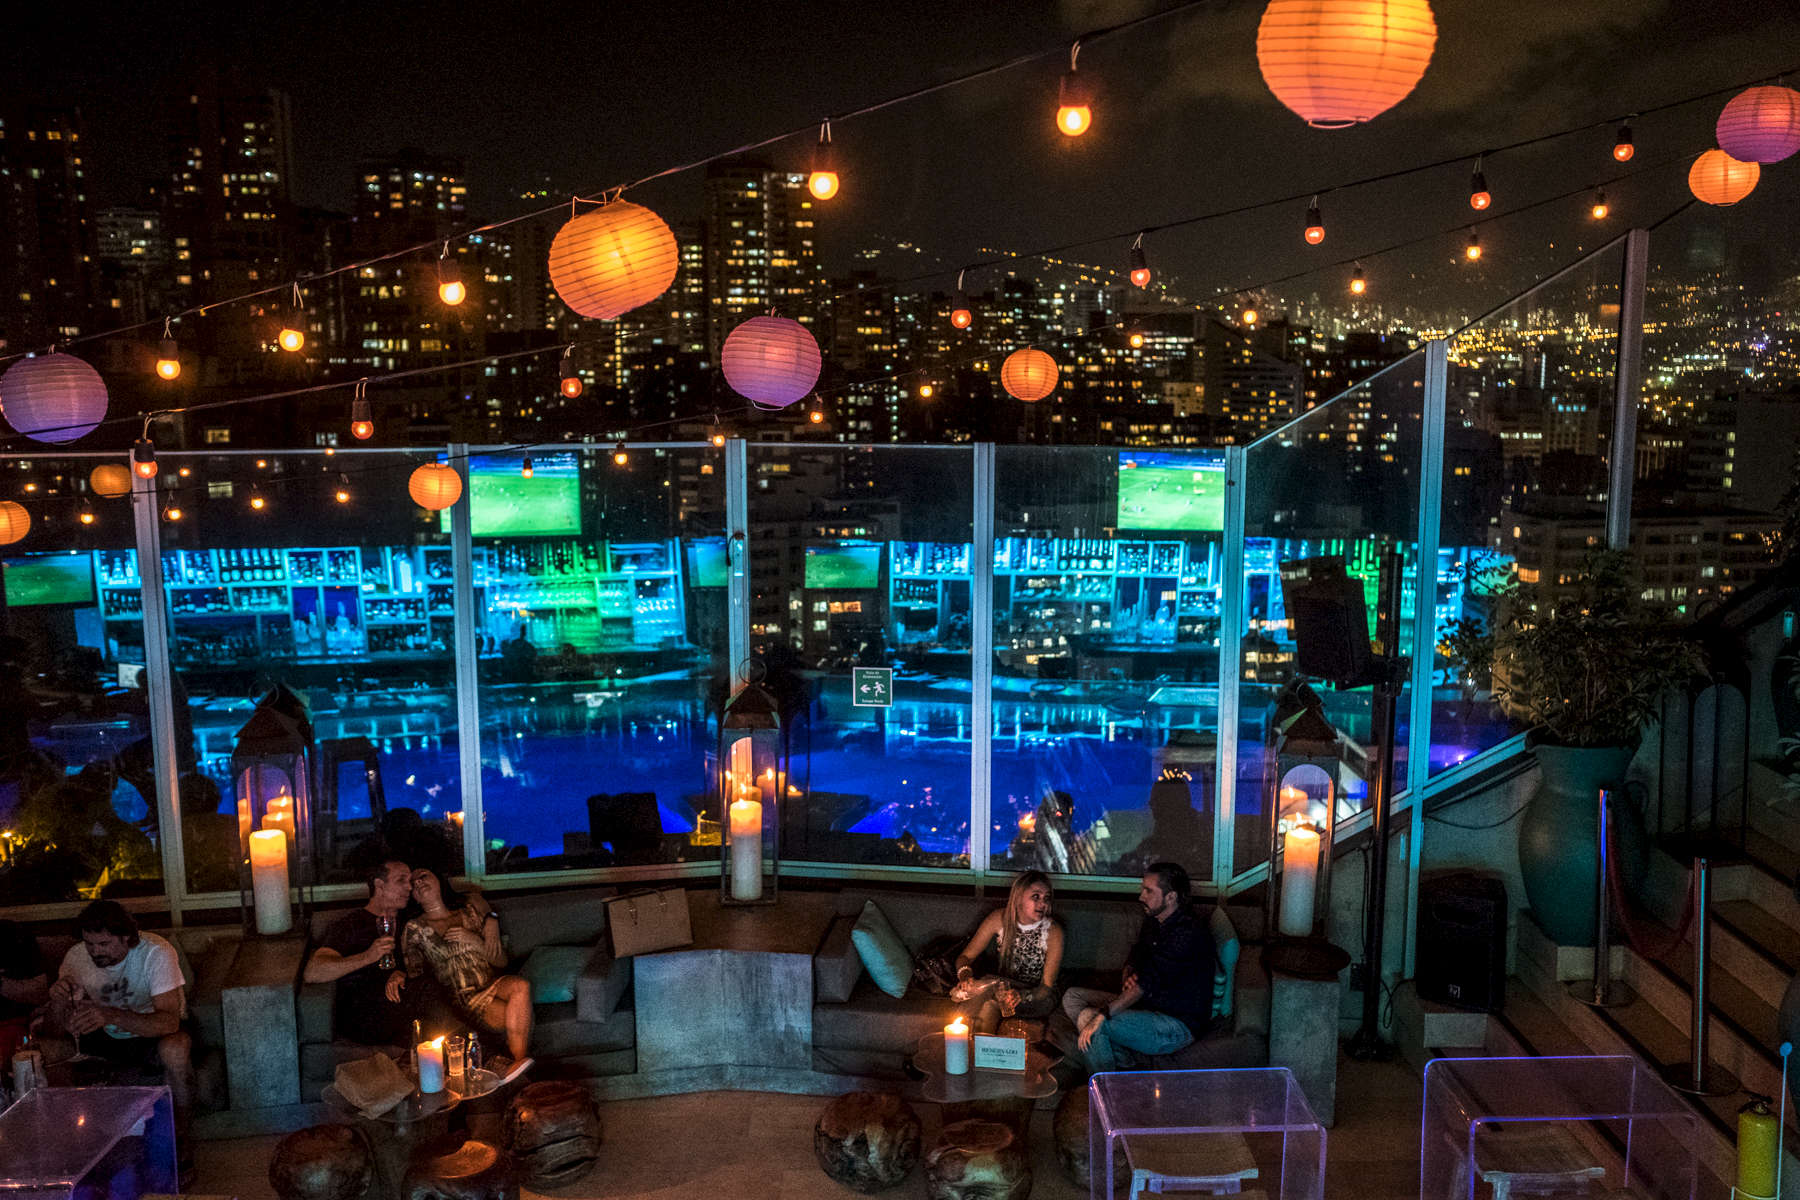 August 10, 2017. Medellin, Antioquia, Colombia. Visitors enjoy the panoramic view at the roof top of Charley Hotel located in the exclusive neighborhood of El Poblado in Medellin.